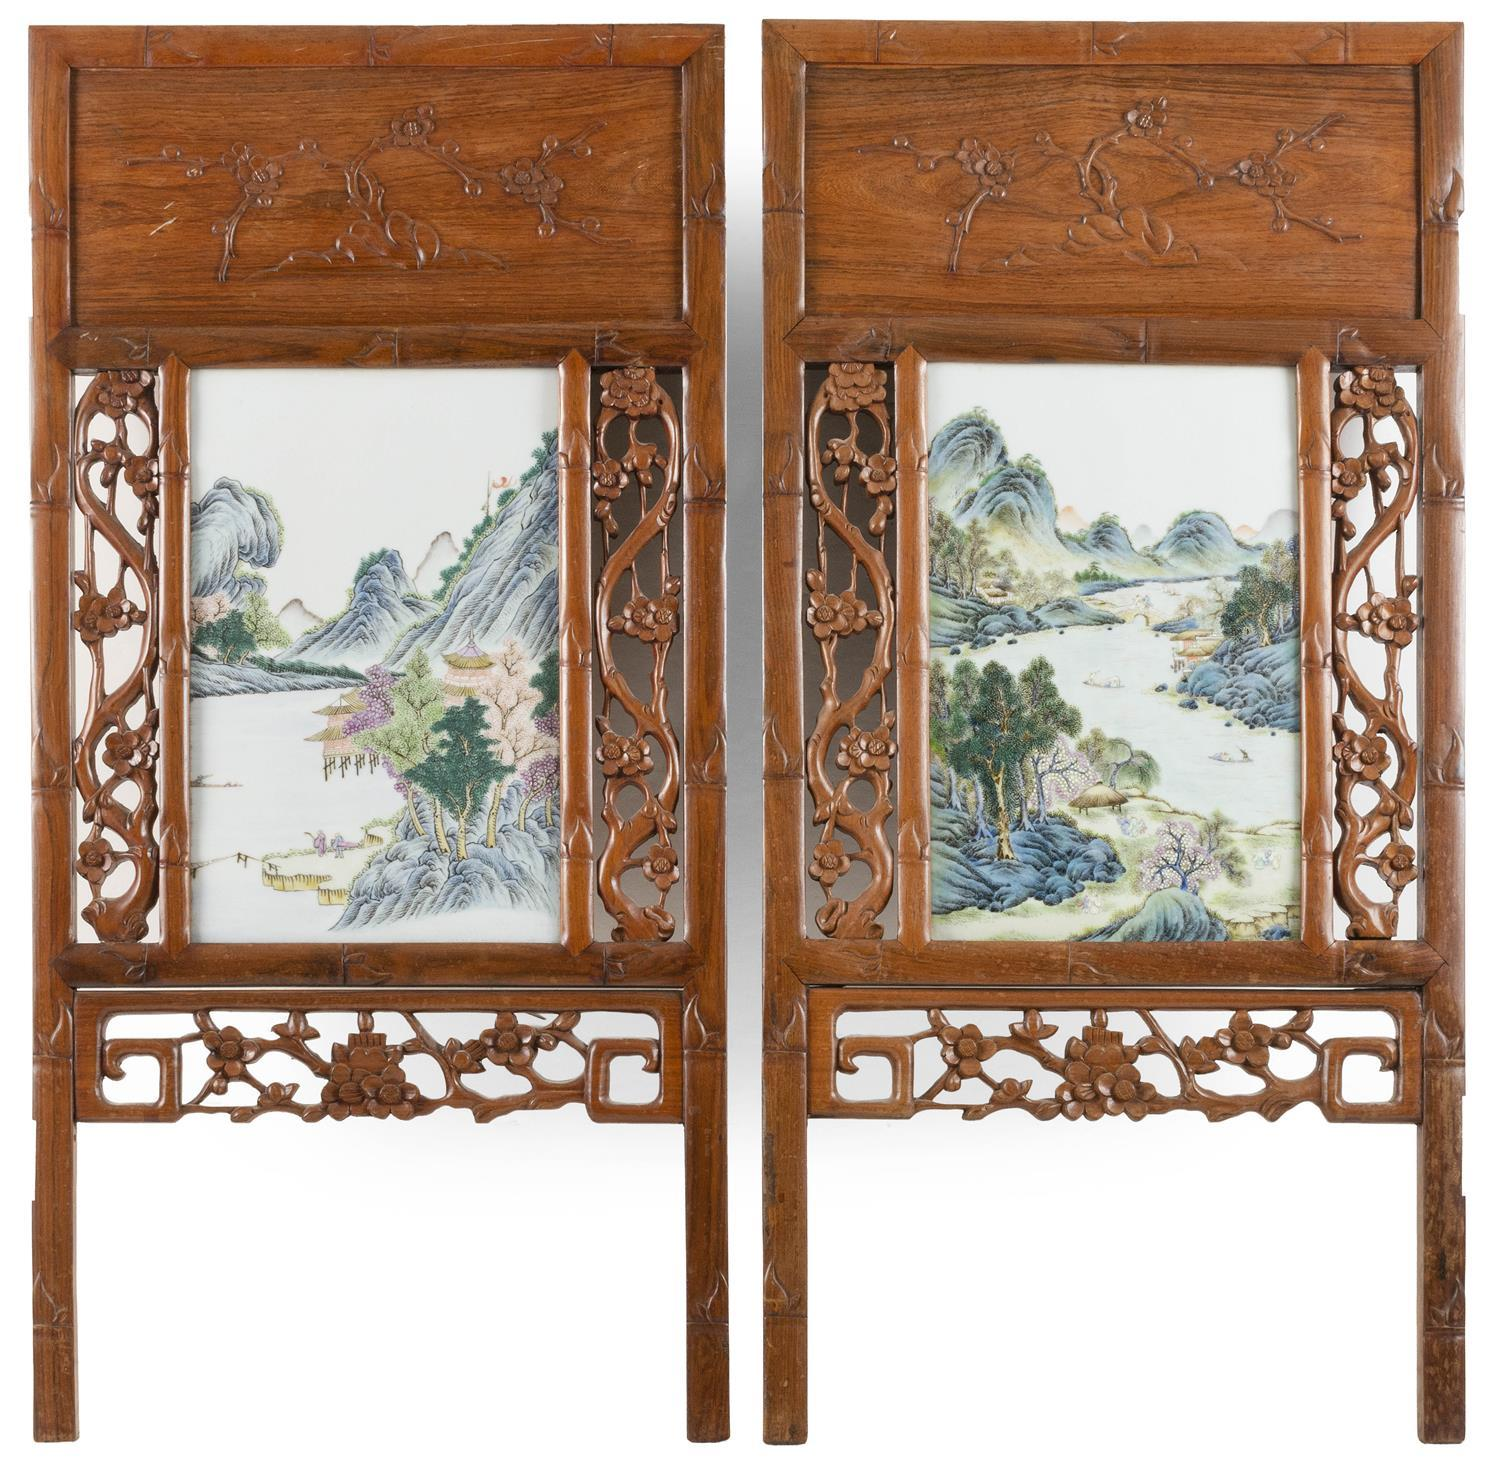 """PAIR OF FRAMED CHINESE FAMILLE VERTE PORCELAIN TILES Both with finely enameled mountain river landscapes. 14"""" x 9"""". Housed in elmwoo..."""